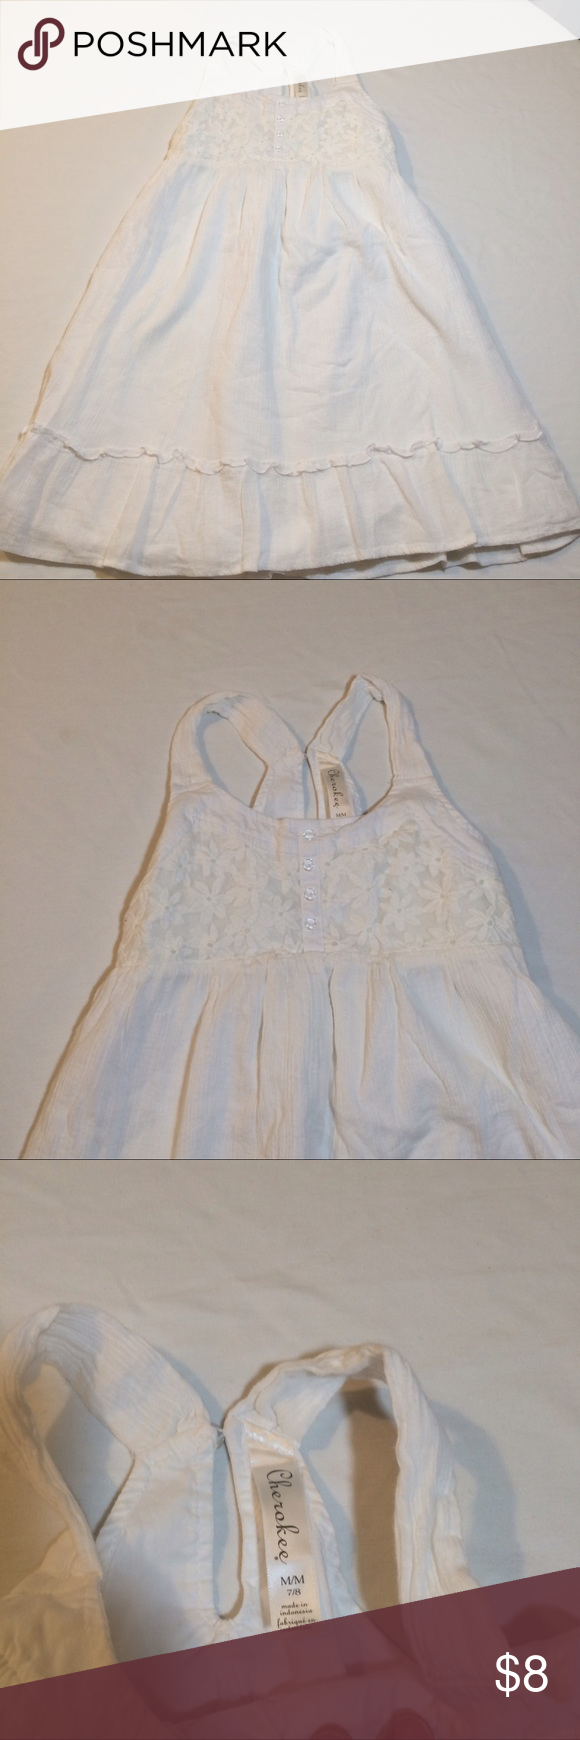 """Cherokee Girl's white dress size 7/8 Cherokee Girl's white dress in size 7/8. It is double lined. There are no stains or tears. Length: 27 1/2""""  width(armpit to armpit) 13"""" Cherokee Dresses Casual"""